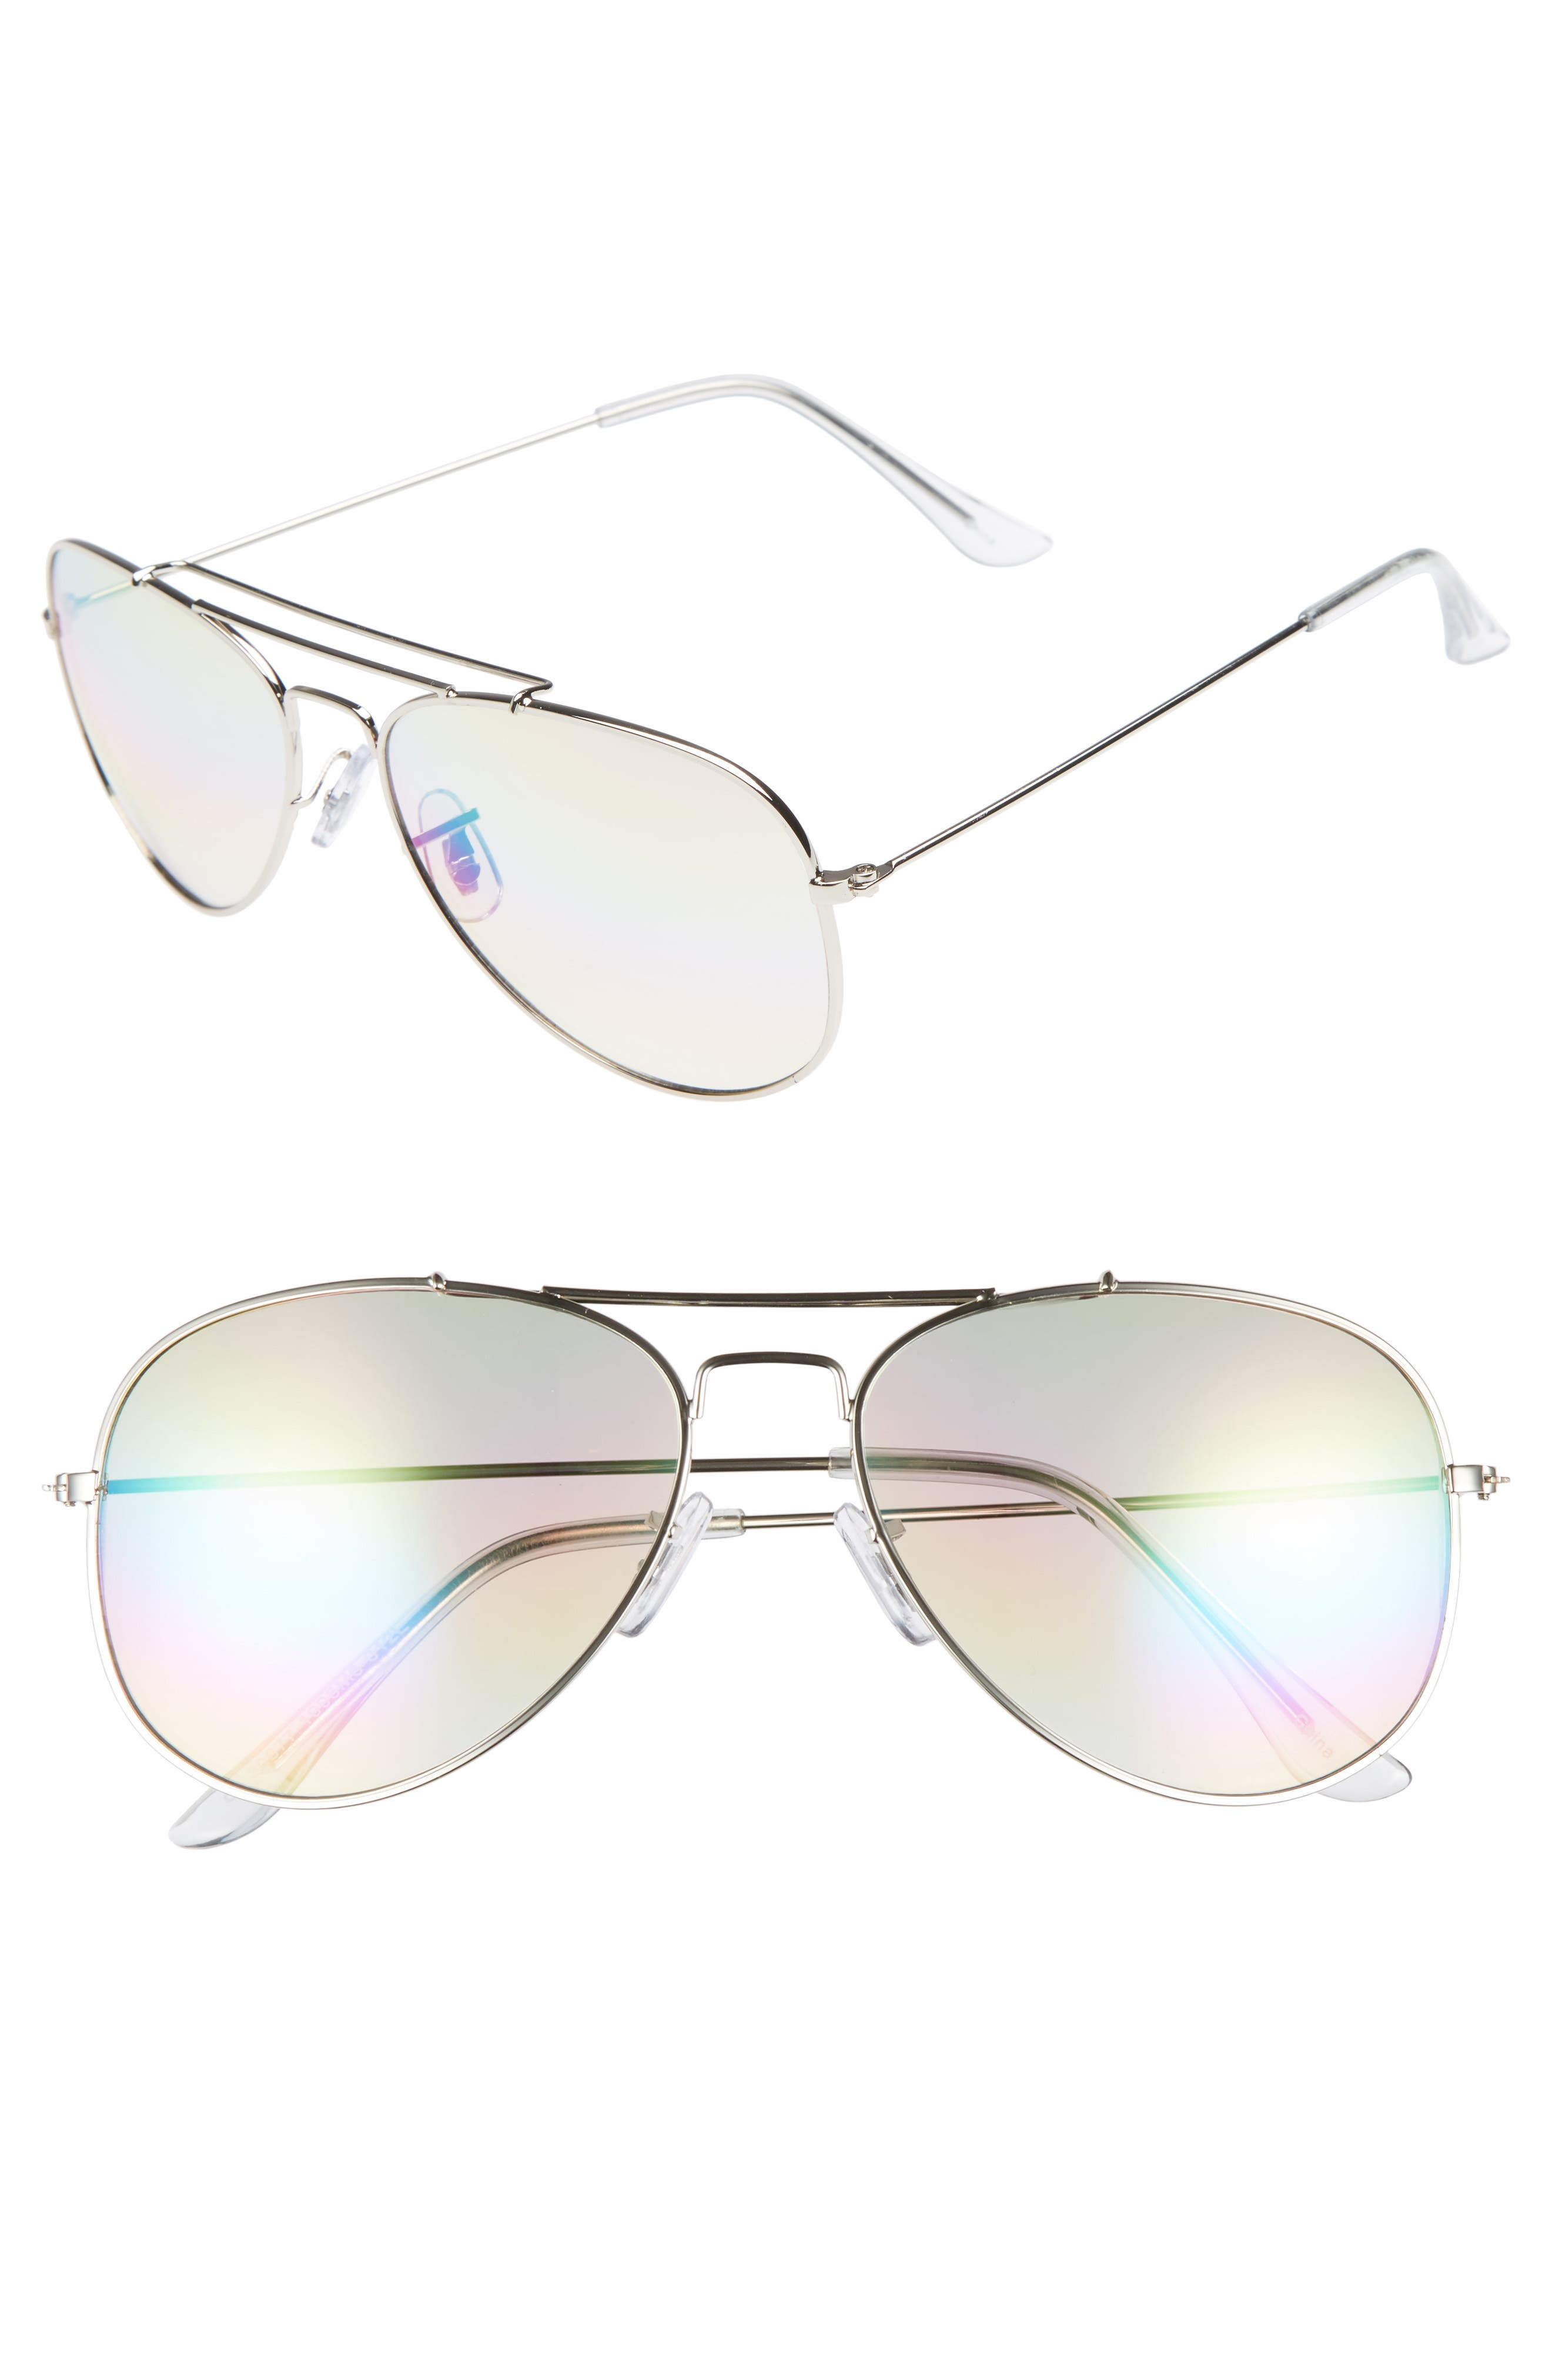 Rainbow Aviator Sunglasses,                         Main,                         color, Silver/ Multi